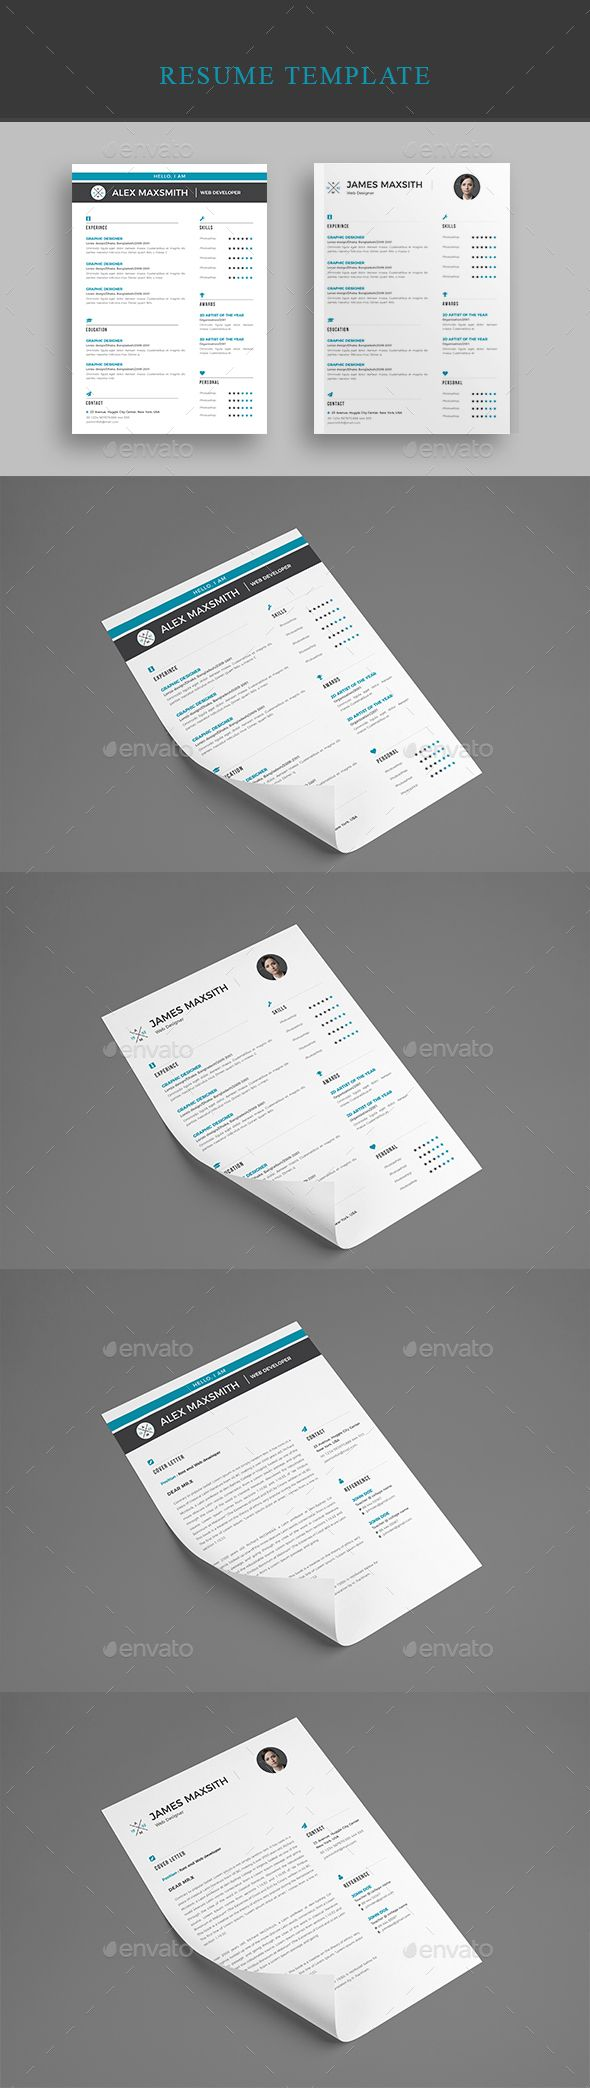 1390 best images about resume design on pinterest